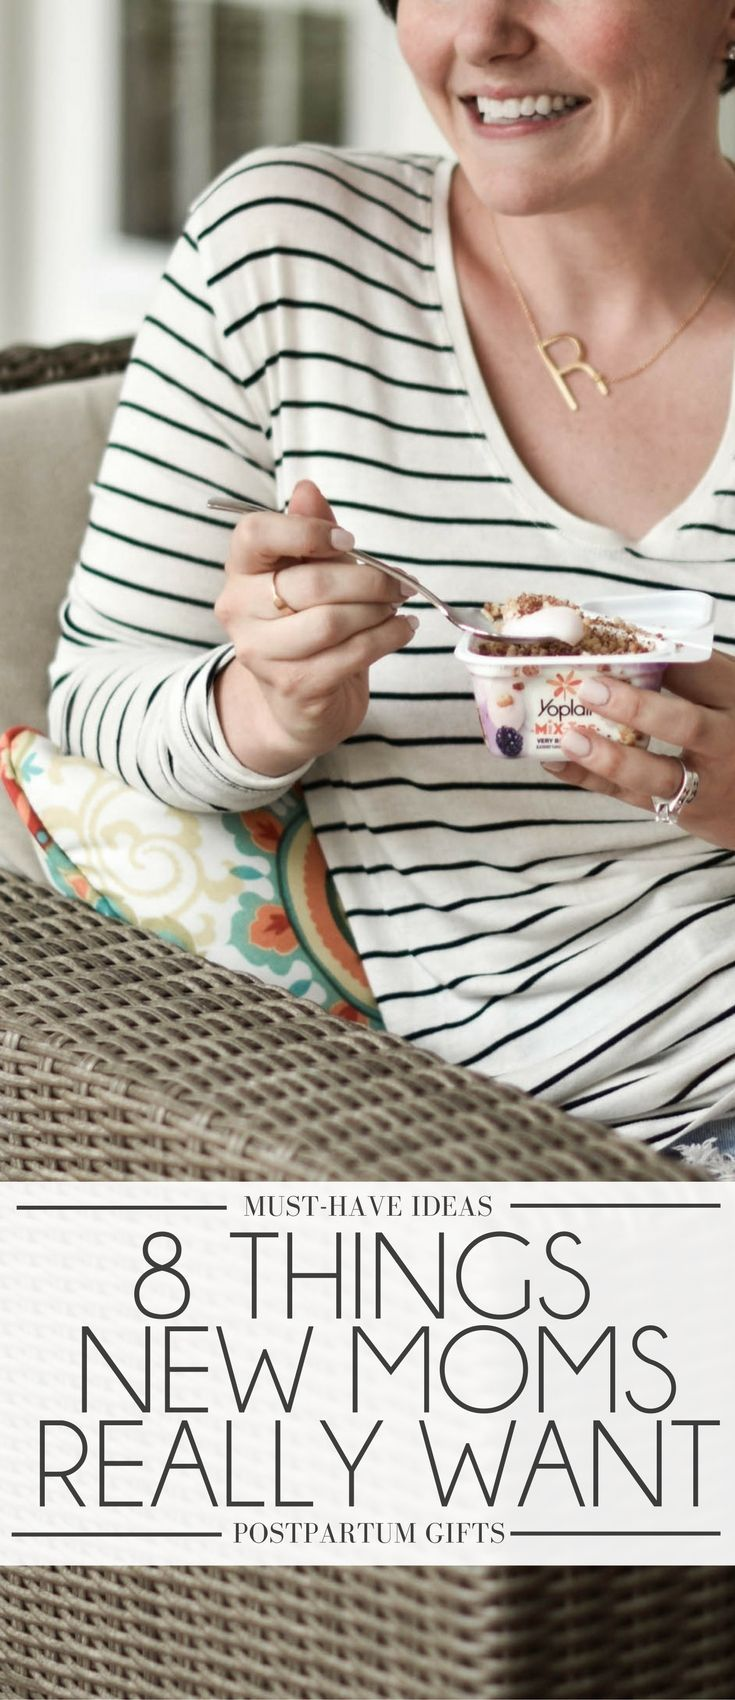 8 things new moms really want must have new mom gifts